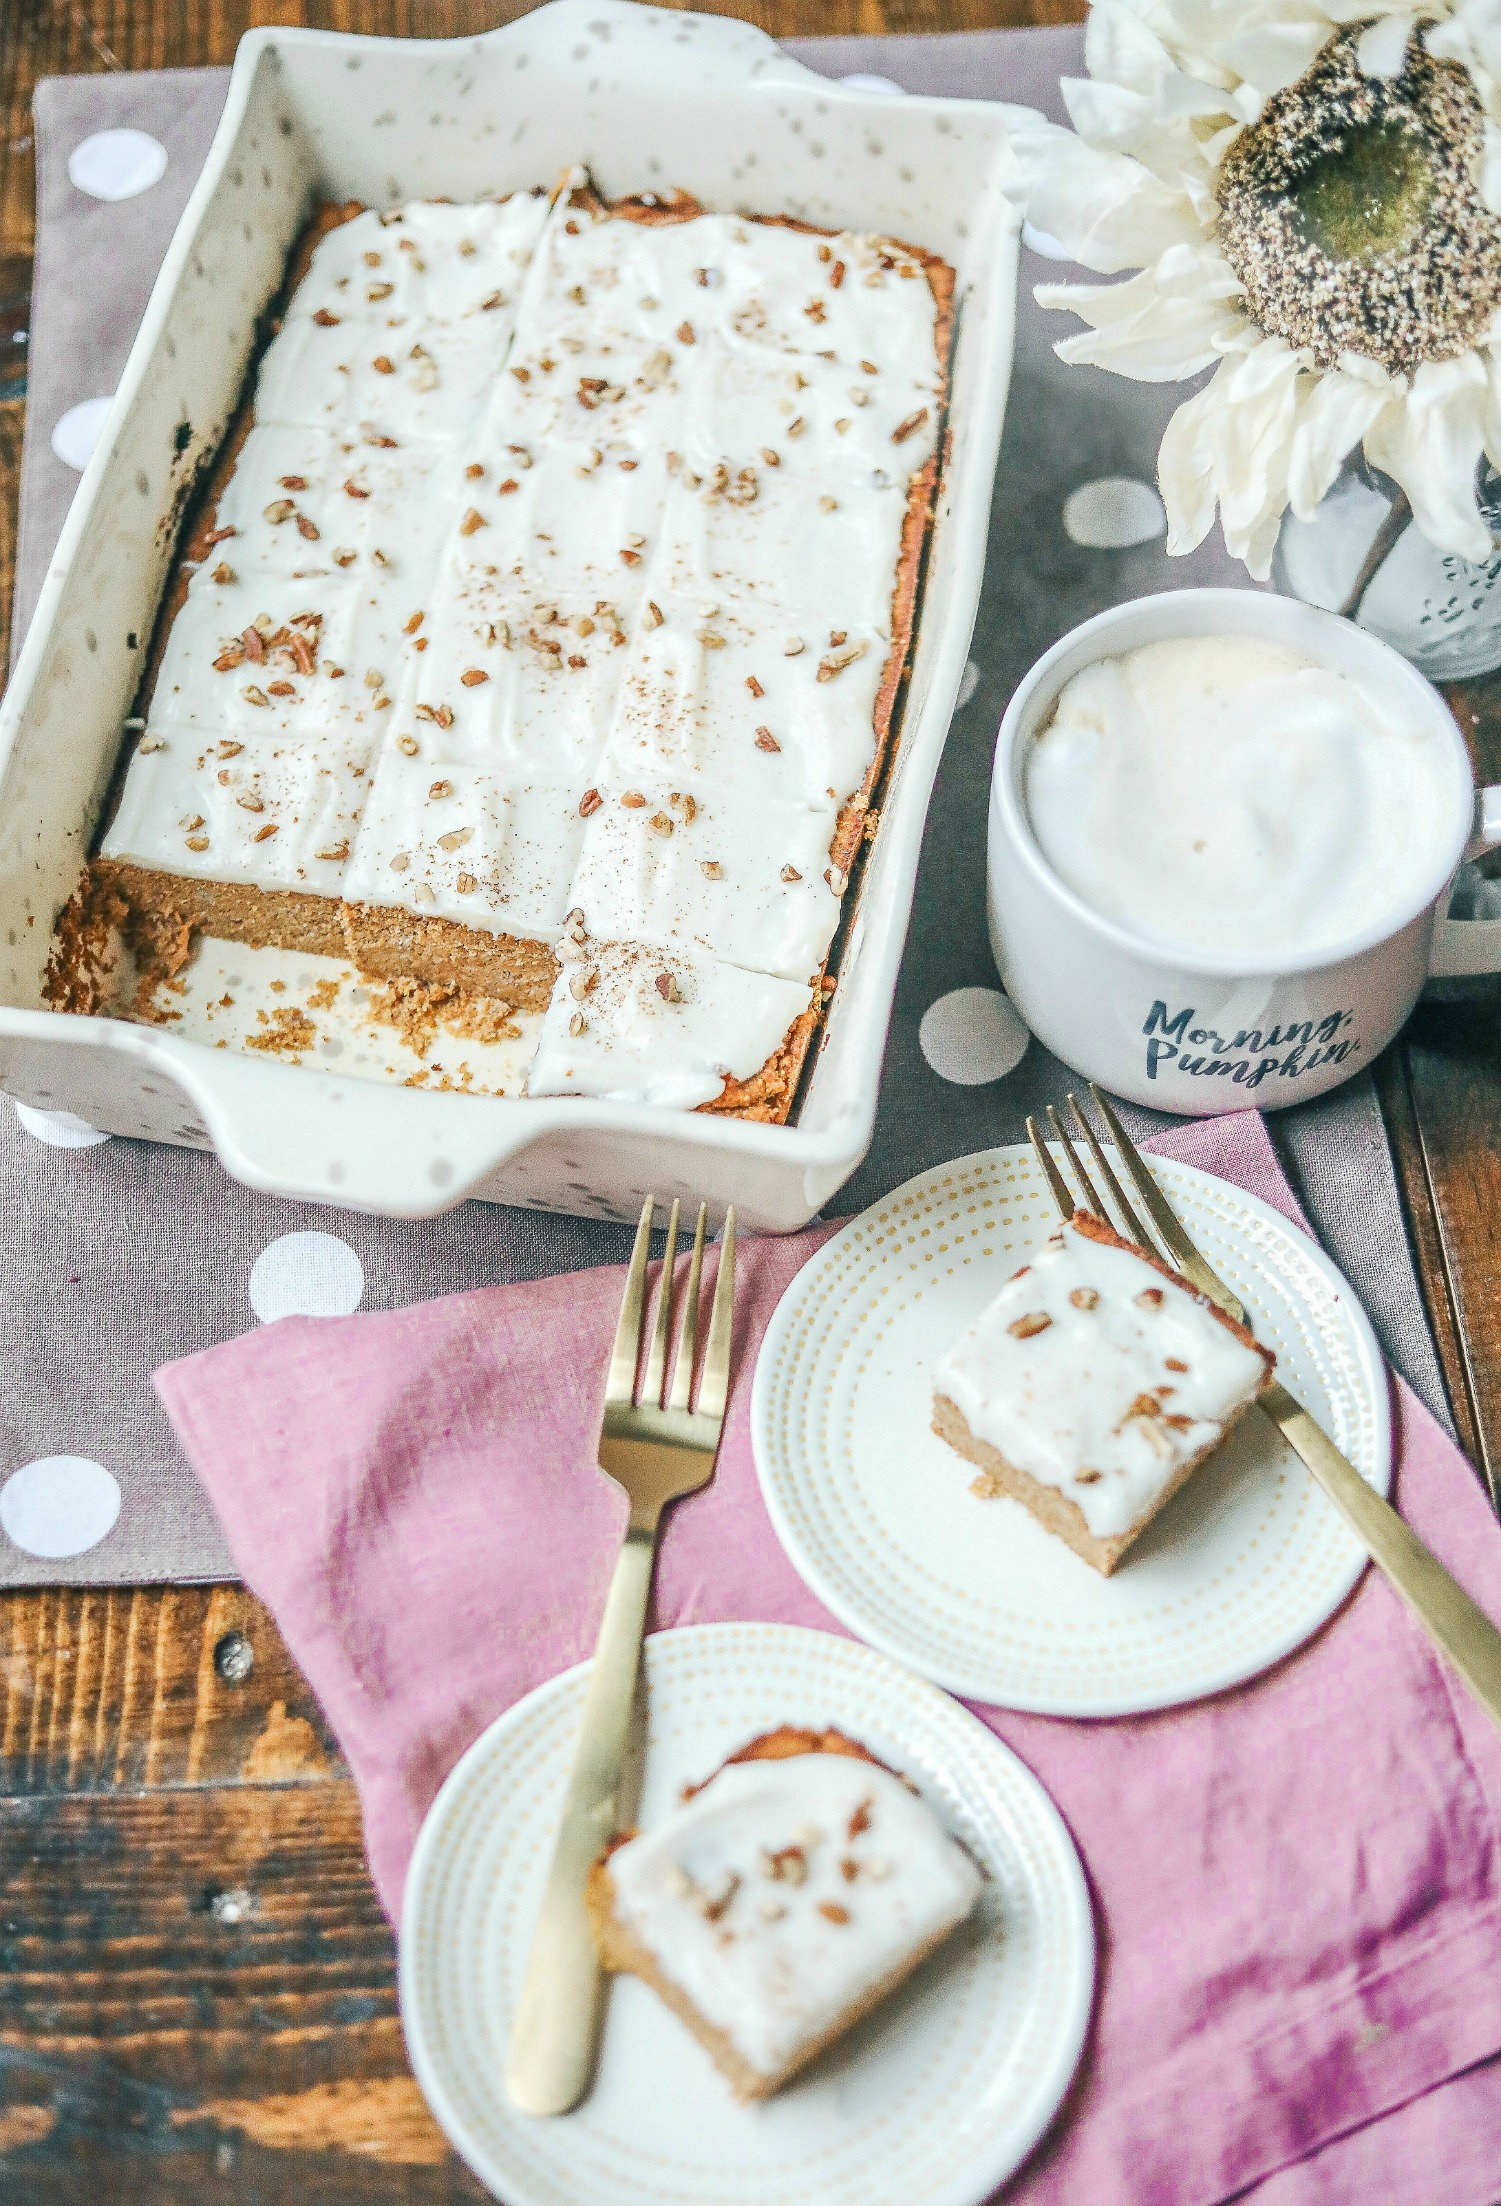 The Best Grain-Free Pumpkin Spice Bars with a Dairy-Free Cream Cheese Frosting  ( No added sugar & lower carb)